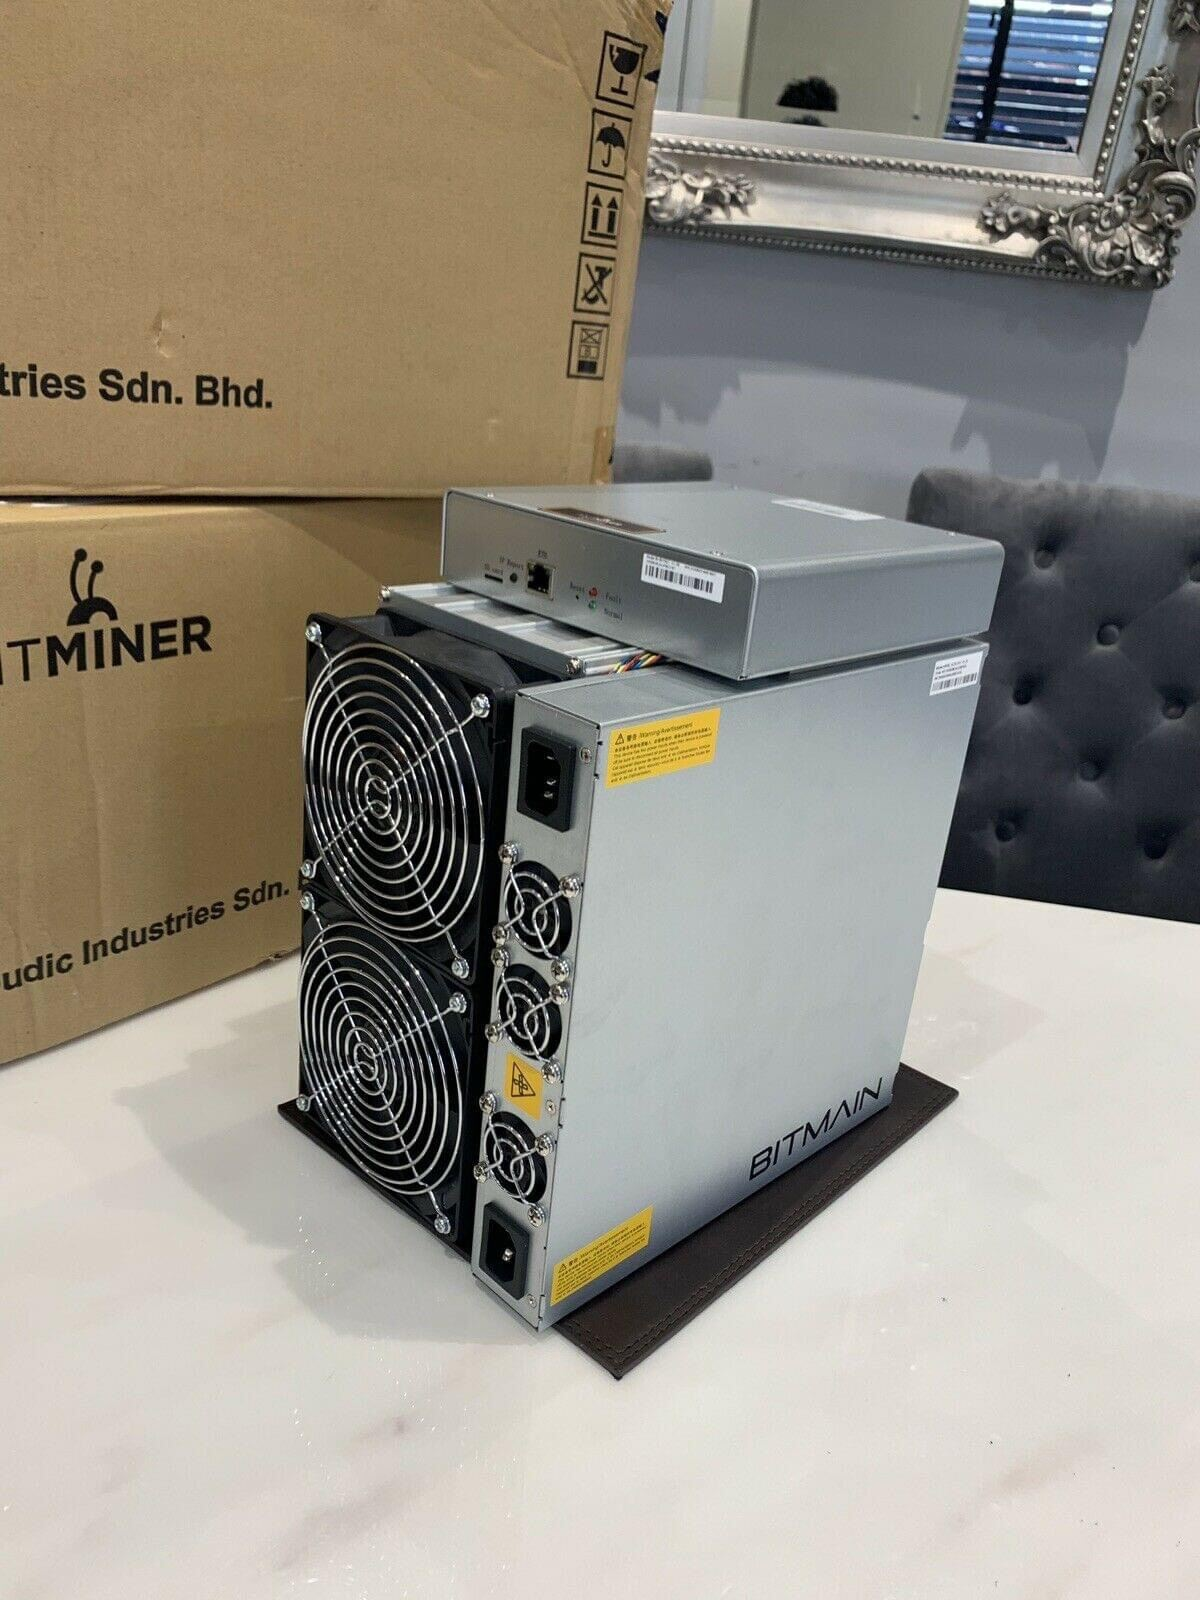 Bitmain AntMiner S19 Pro 110Th/s, Bitmain Antminer S19 95TH, A1 Pro 23th Miner, Antminer T17+, ANTMINER L3+, Antminer E3, Innosilicon A10 PRO, Canaan AVALON A1246 ASIC Bitcoin miner 83TH , Goldshell HS5 SiaCoin , DragonMint T1 SHA-256 16TH/s ,GEFORCE RTX 3090, RTX 3080, RTX 3080 TI, RTX 3070 TI, RTX 3070, RTX 3060 TI